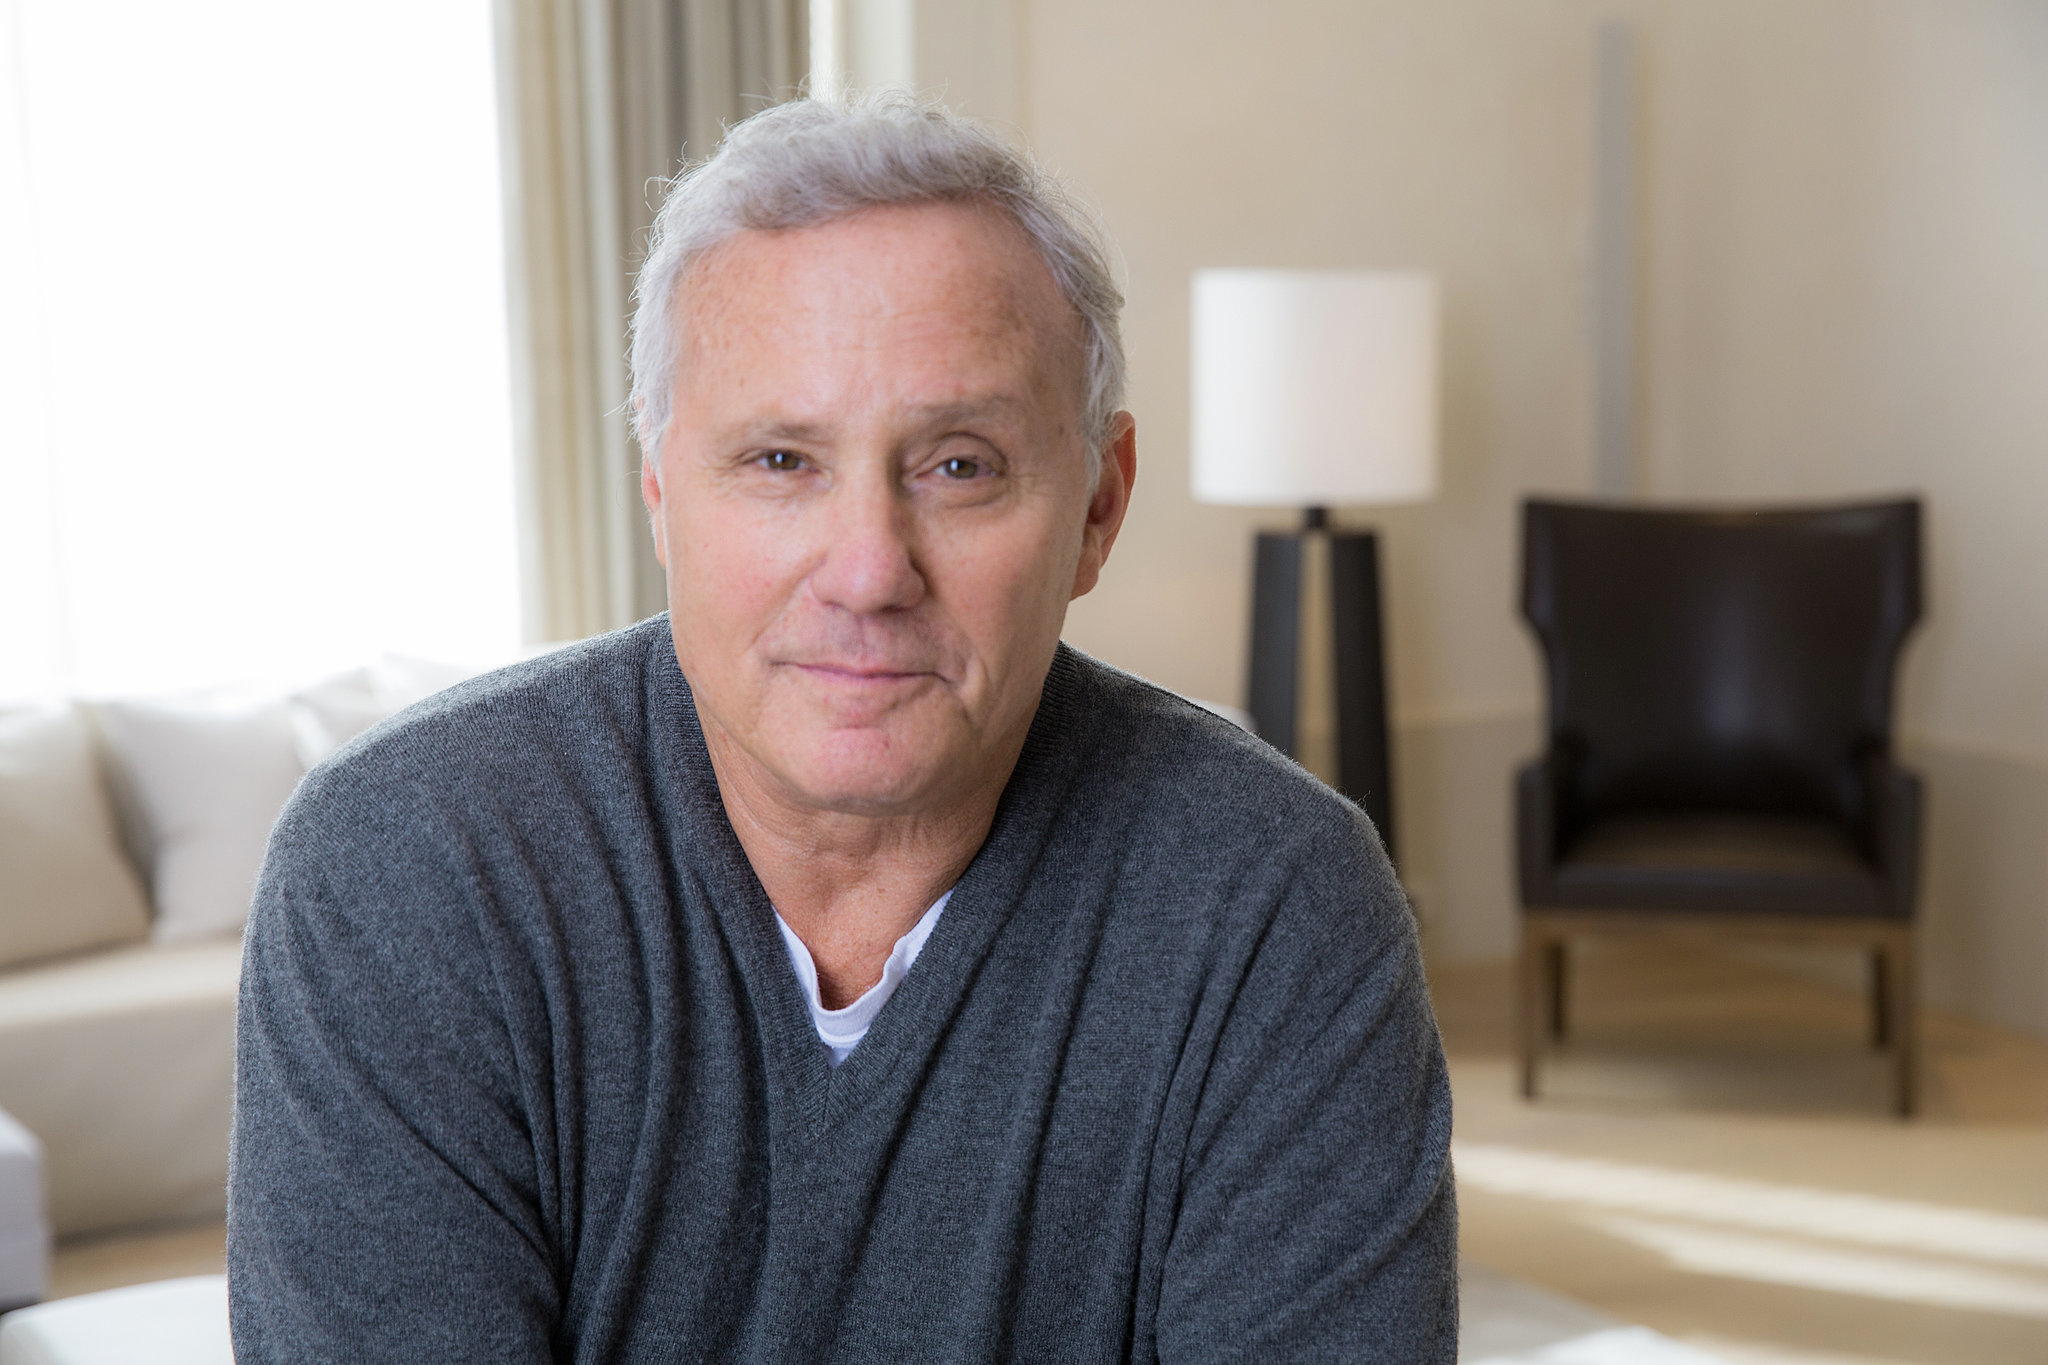 Ian Schrager at The New York Times Edition